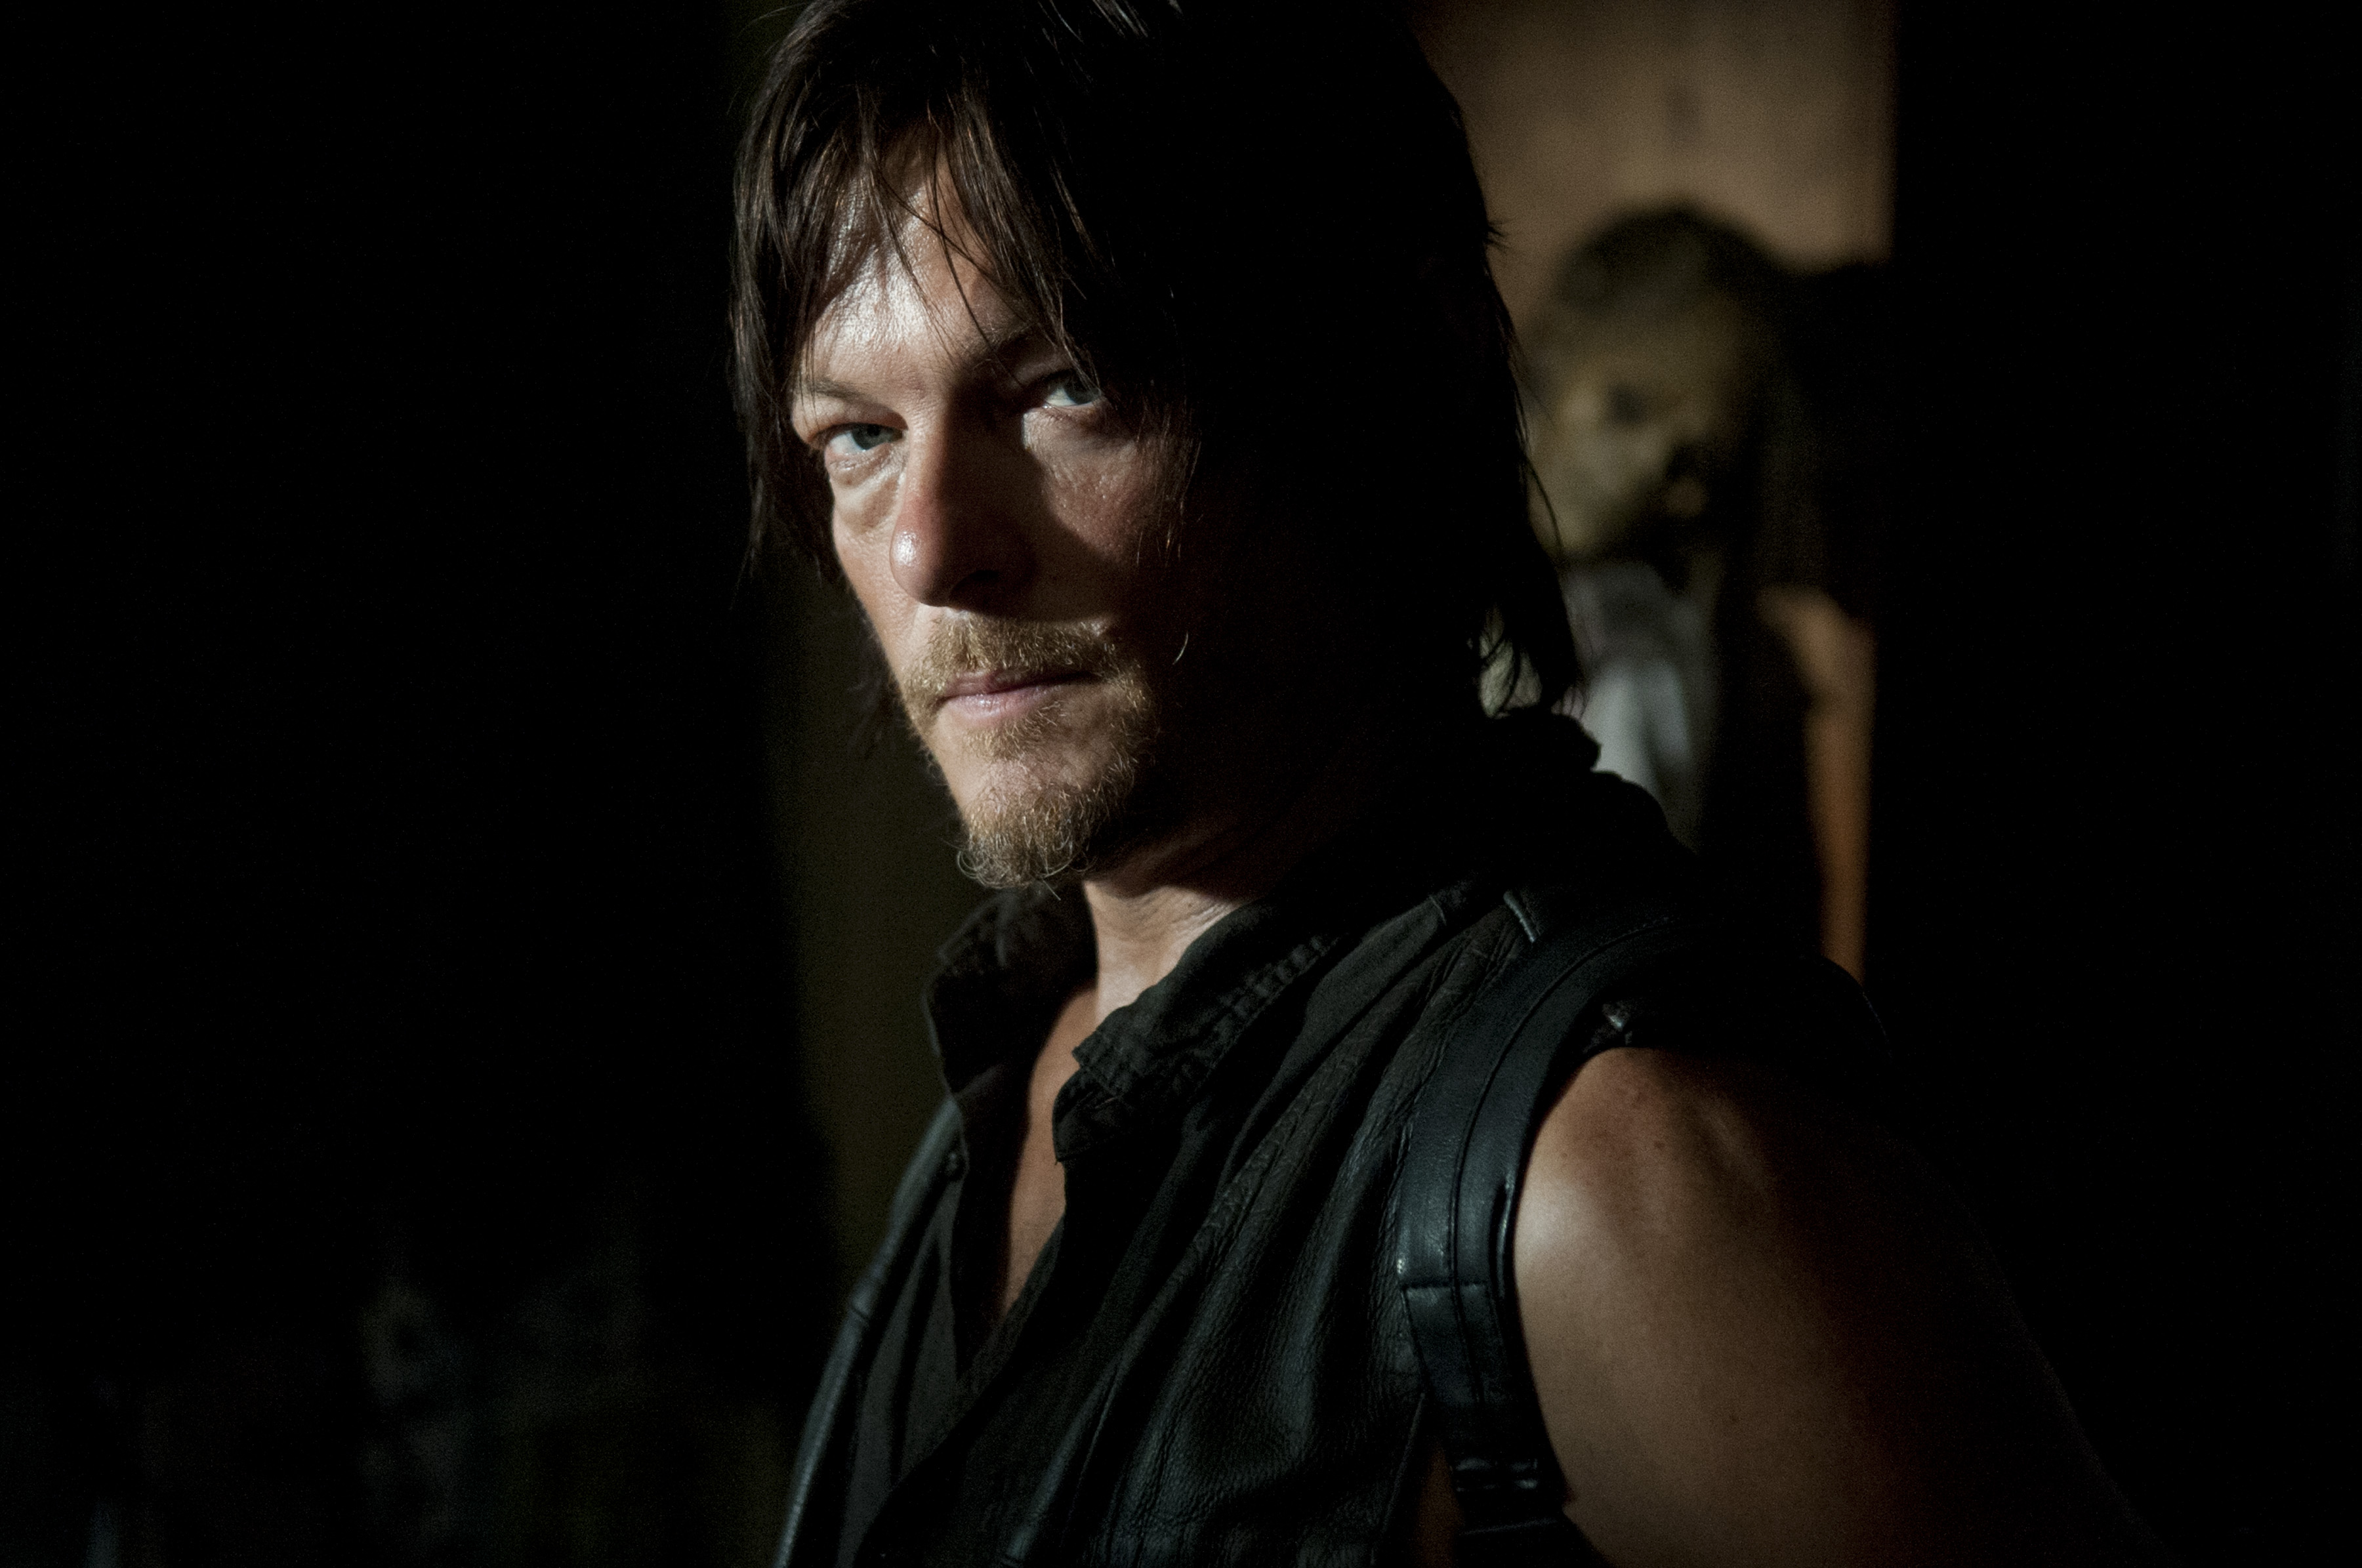 walking dead season 4 episode 12 still beth - Robert Kirkman Says Daryl Dixon is His Favorite Element on The Walking Dead Show